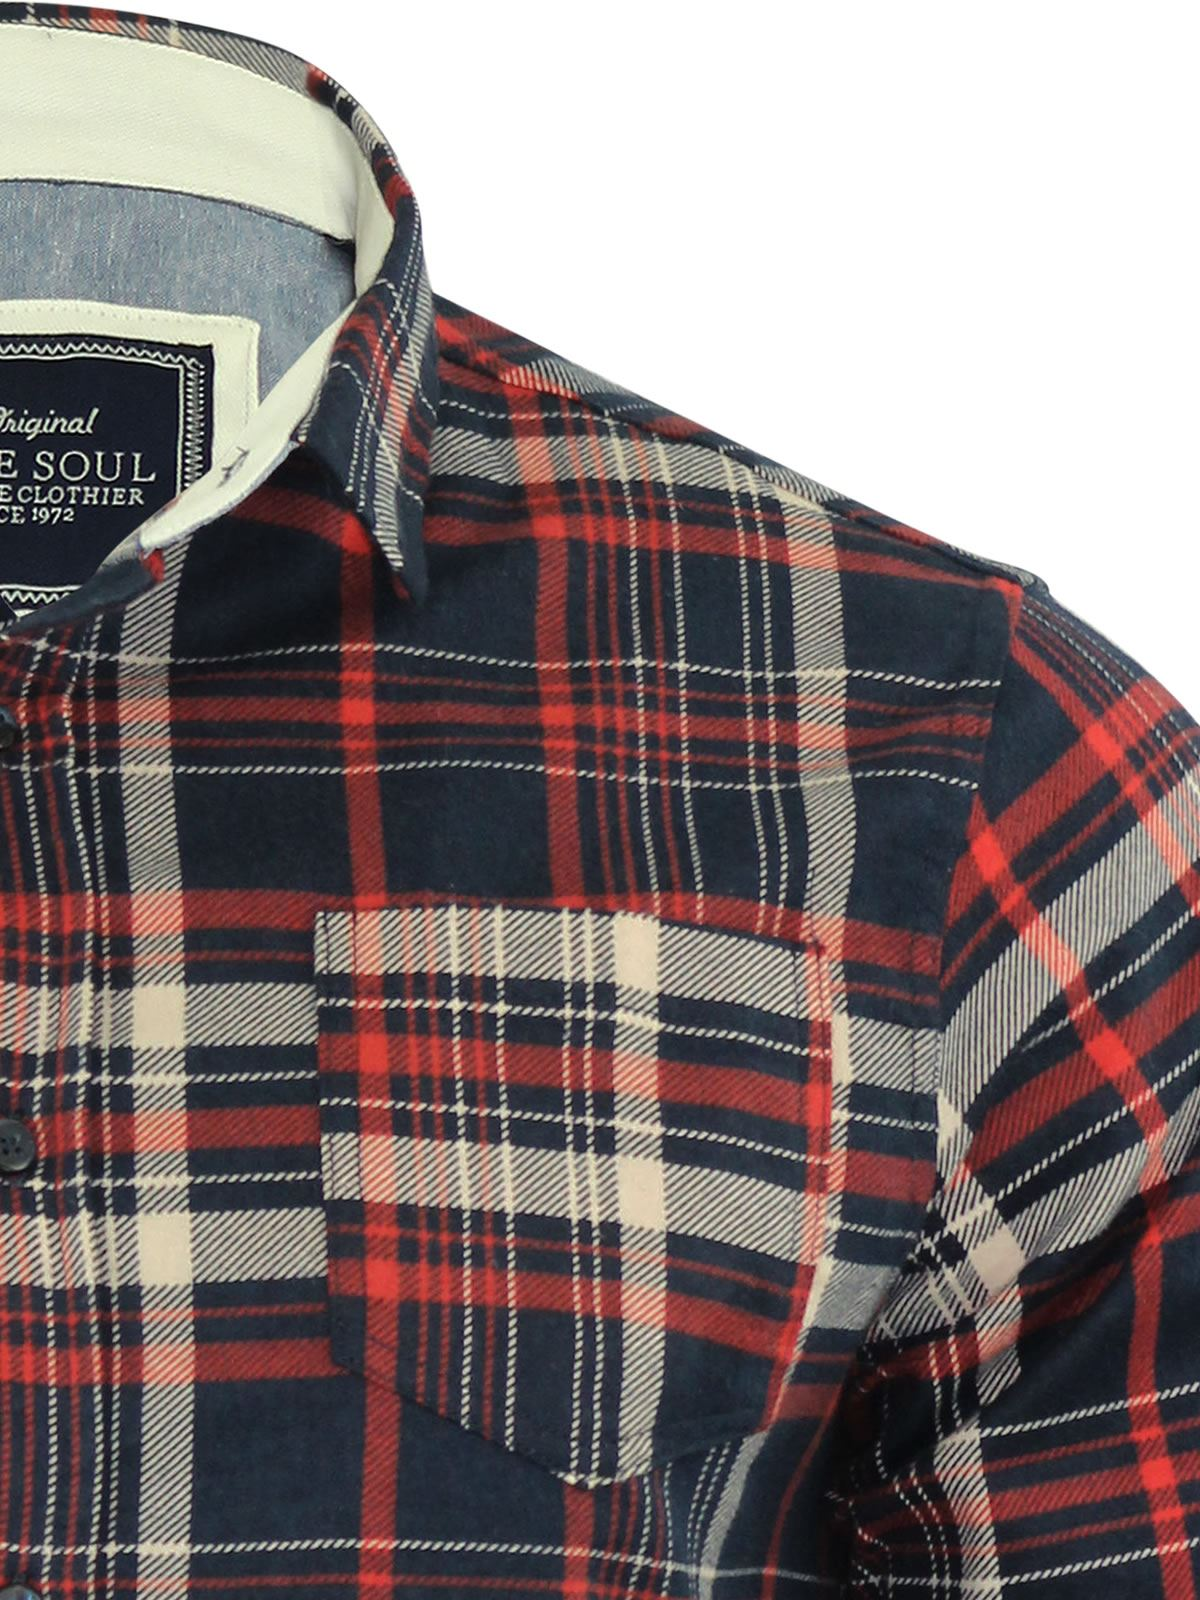 Mens-Check-Shirt-Brave-Soul-Flannel-Brushed-Cotton-Long-Sleeve-Casual-Top thumbnail 37